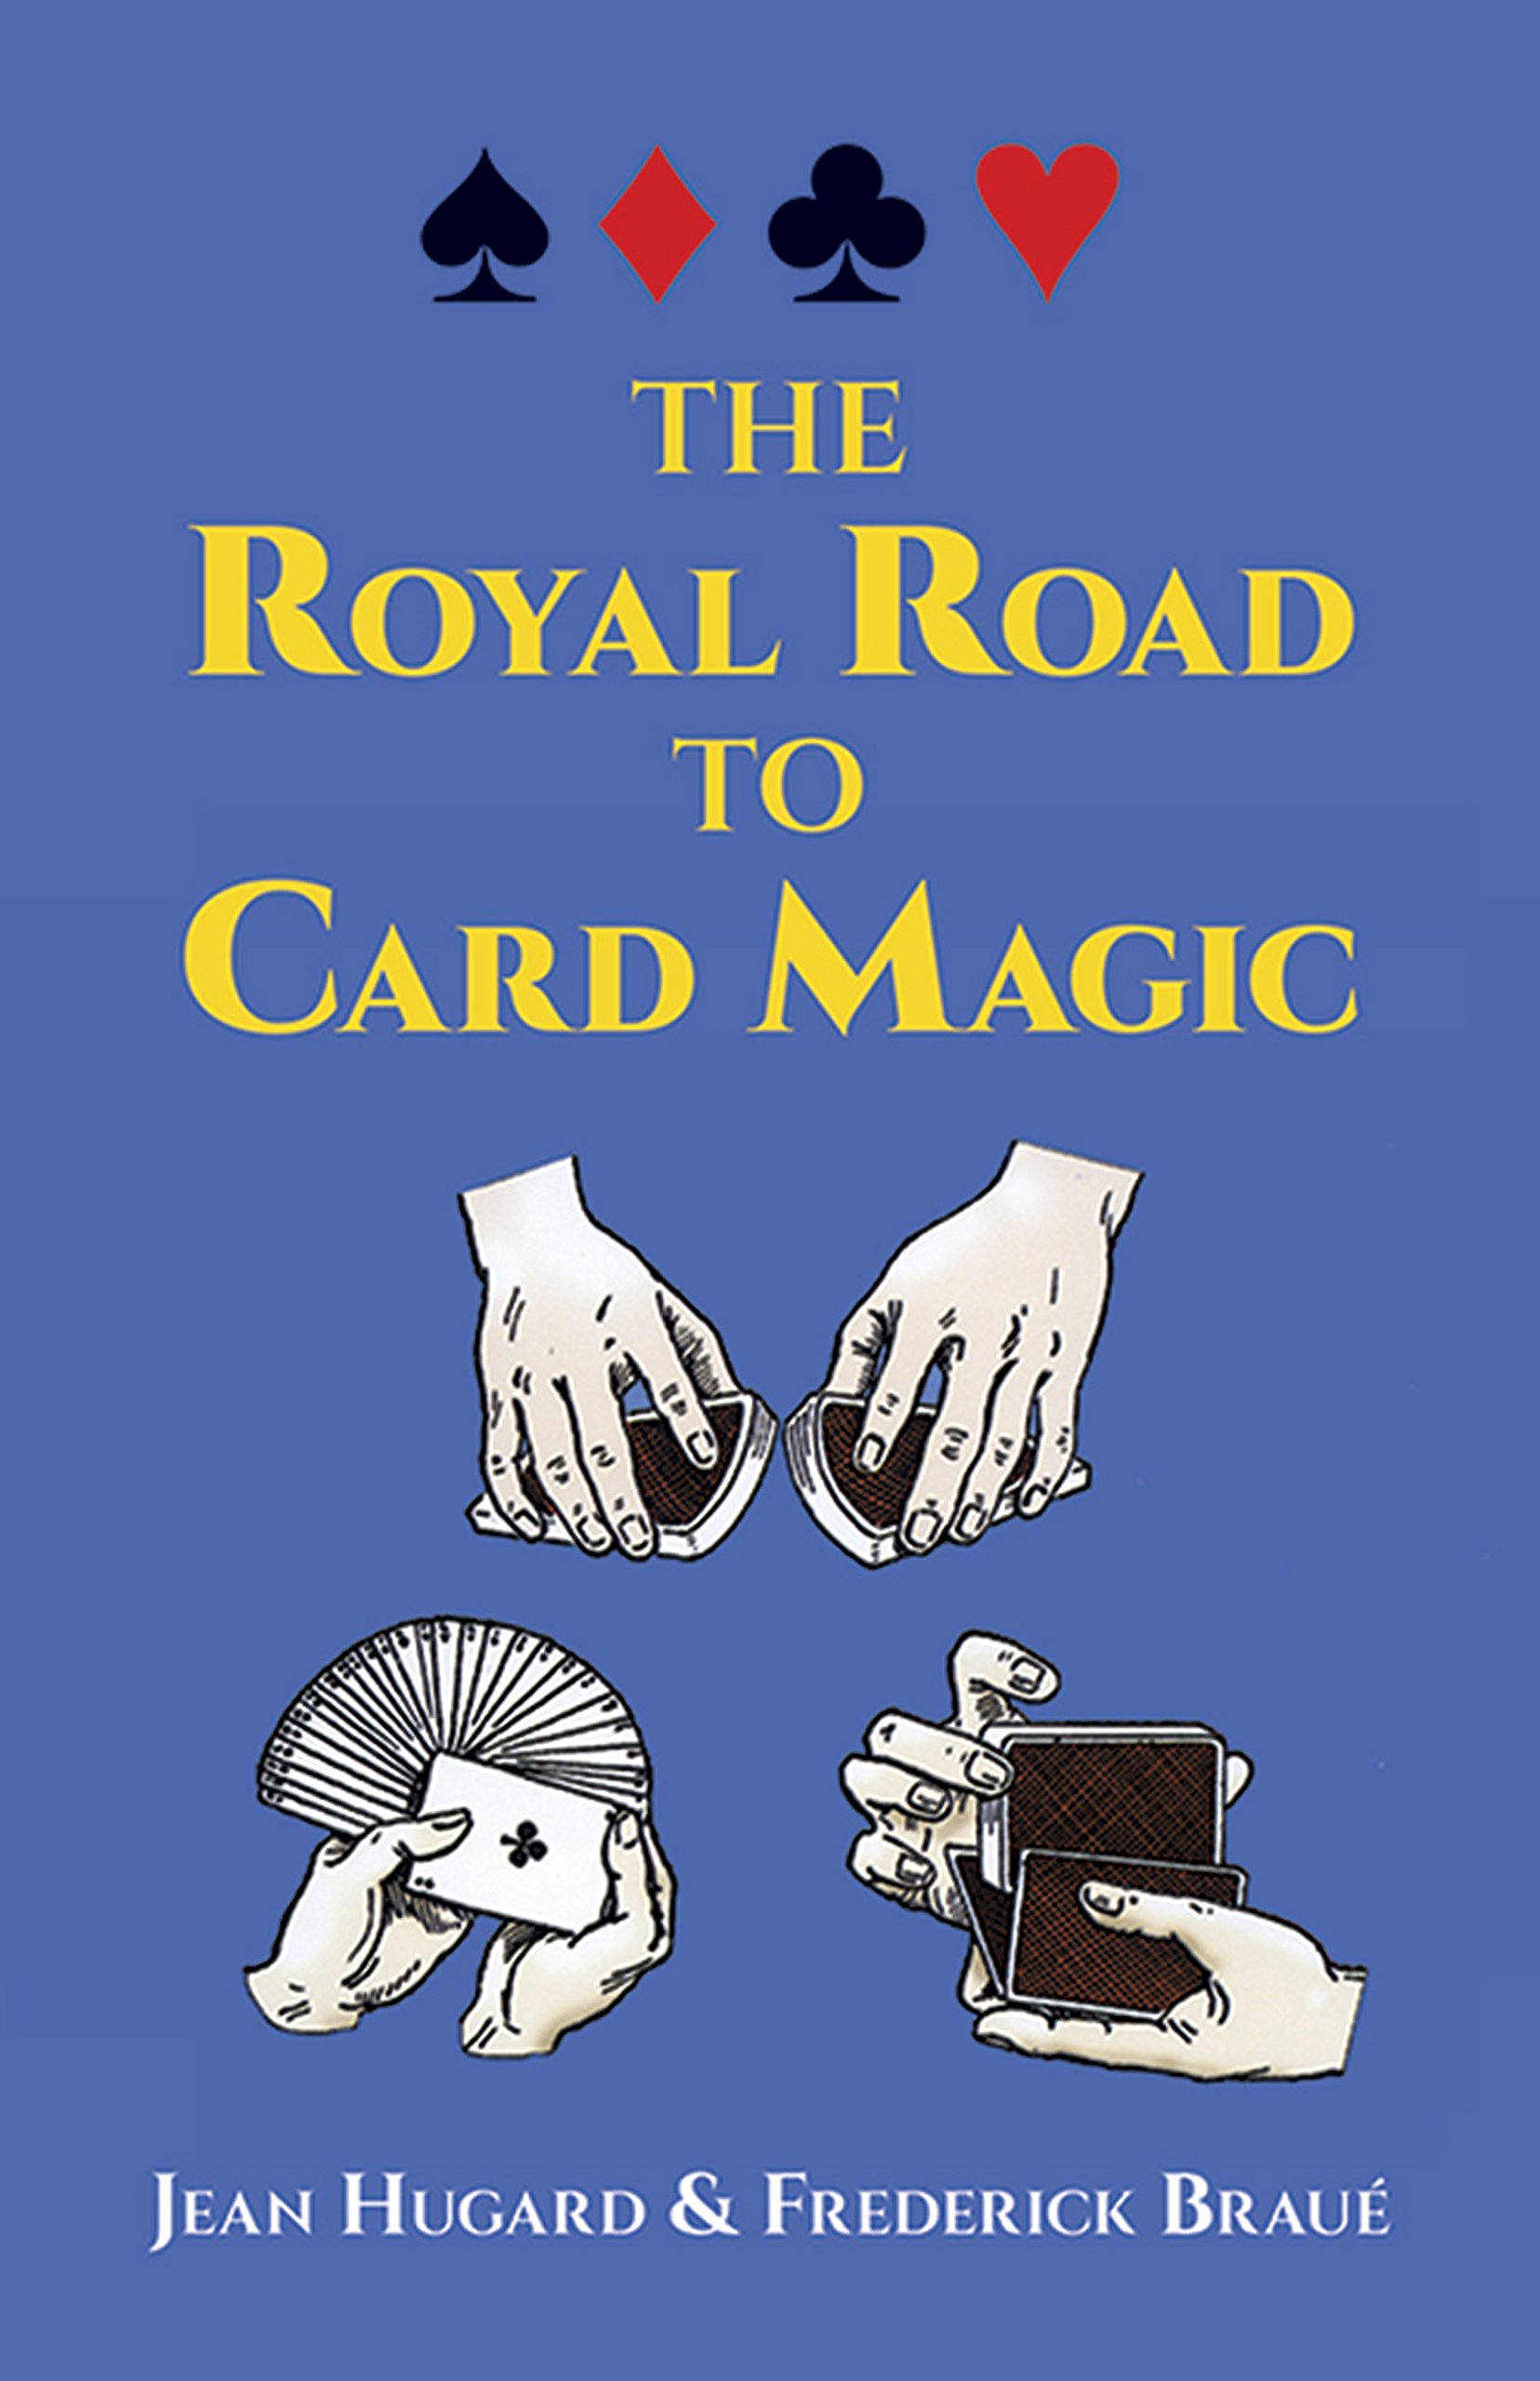 Buy The Royal Road to Card Magic (Dover Magic Books) Book Online at Low  Prices in India | The Royal Road to Card Magic (Dover Magic Books) Reviews  & Ratings ...